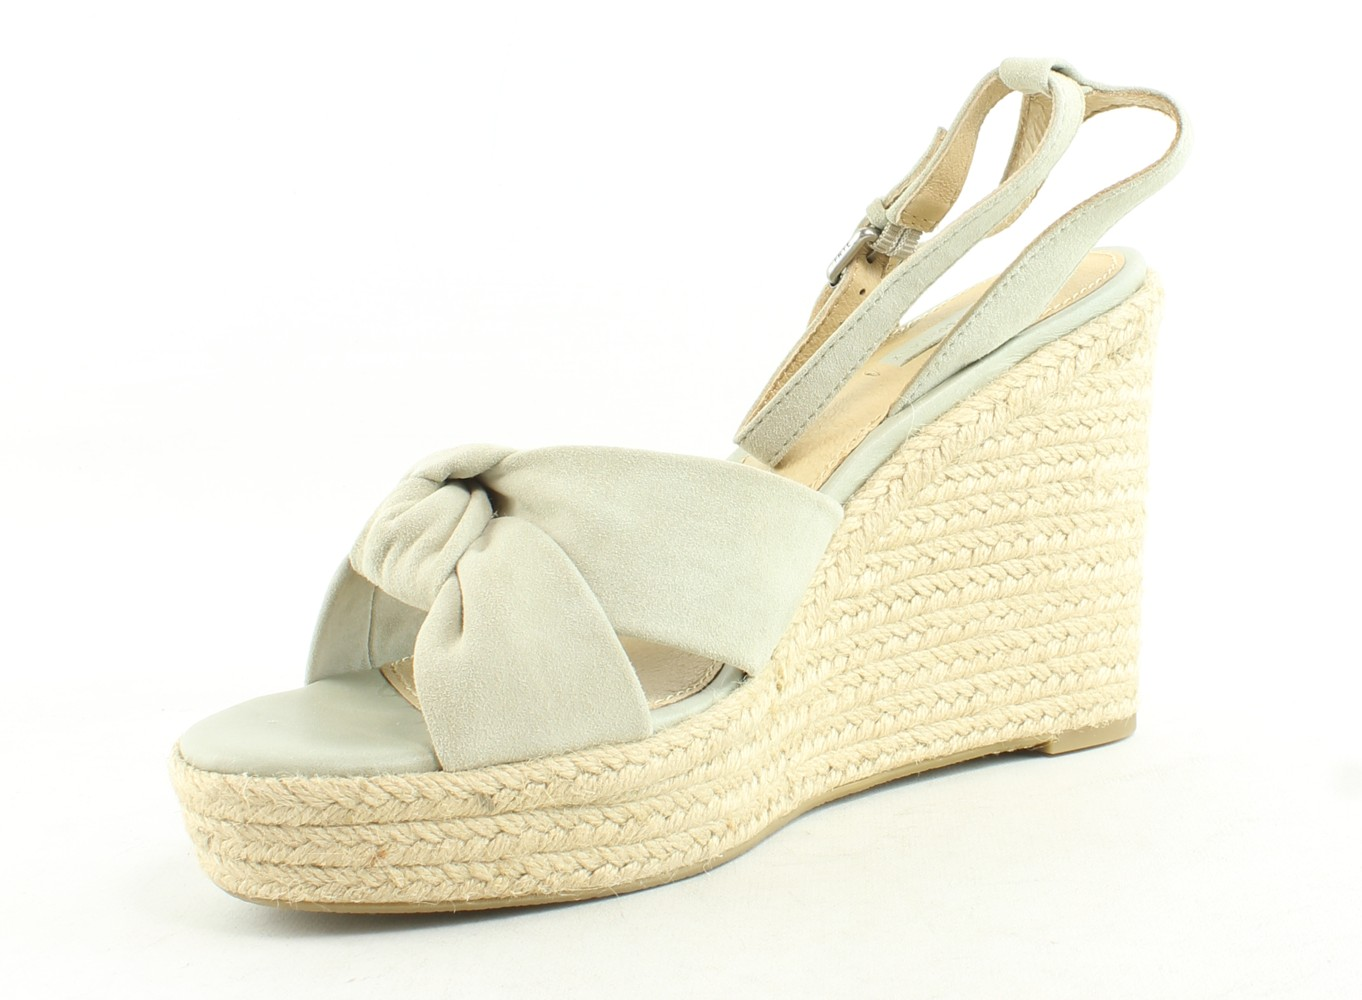 Frye-Womens-Charlotte-Twist-Suede-Leather-Ankle-Strap-Espadrille-Heels thumbnail 14